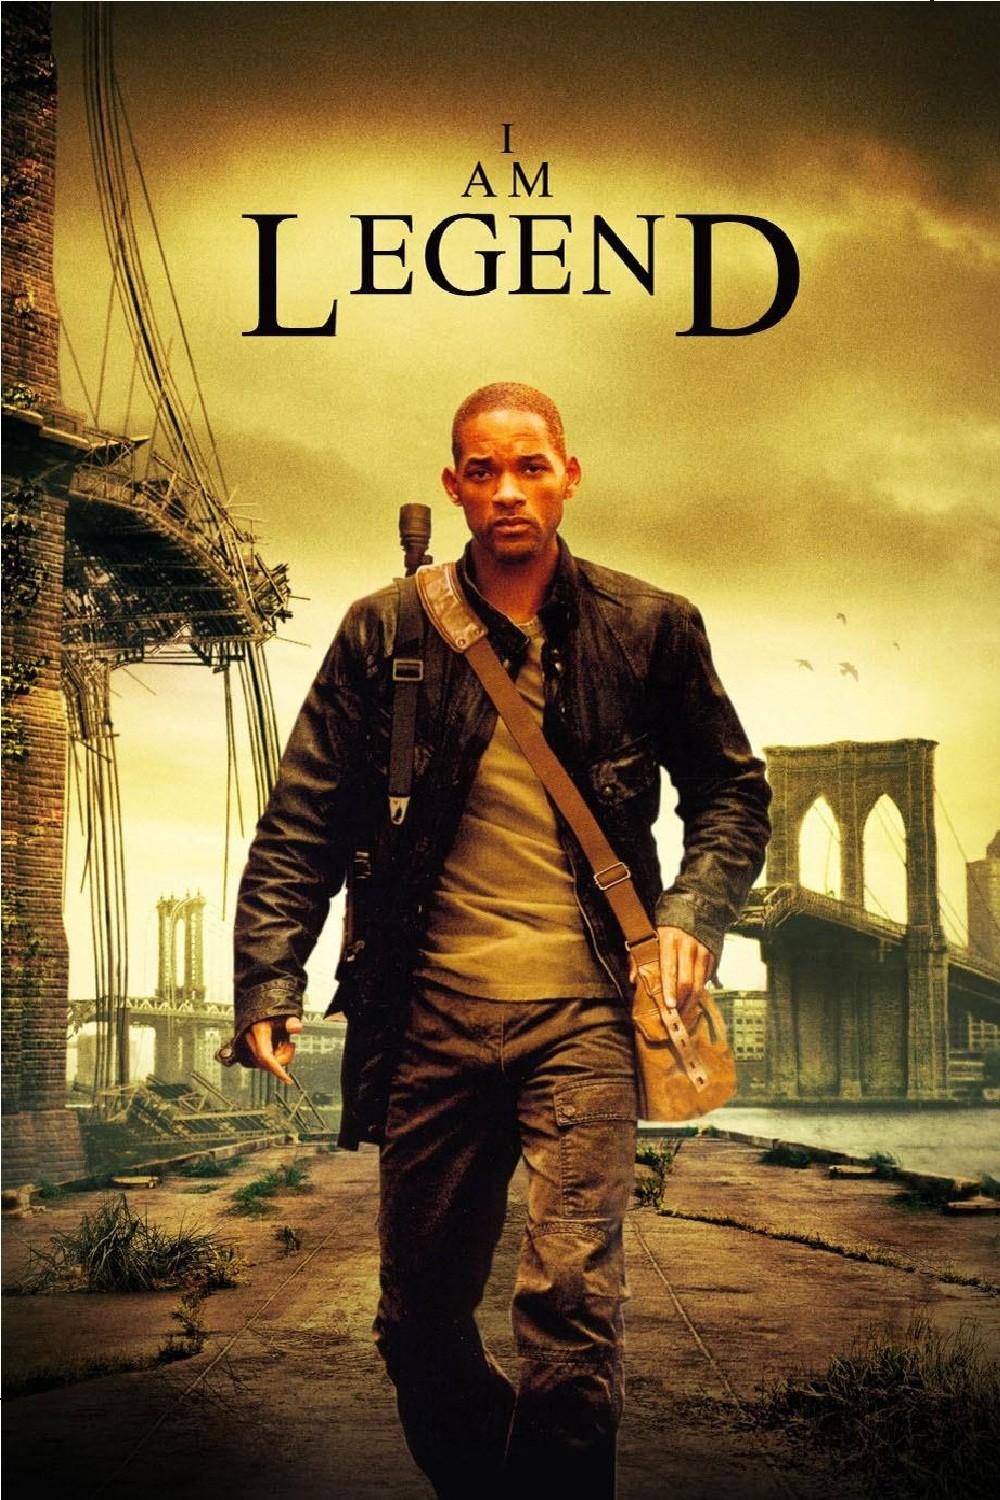 March Pop Culture and the Bible, Bible Study: I Am Legend - Image 1